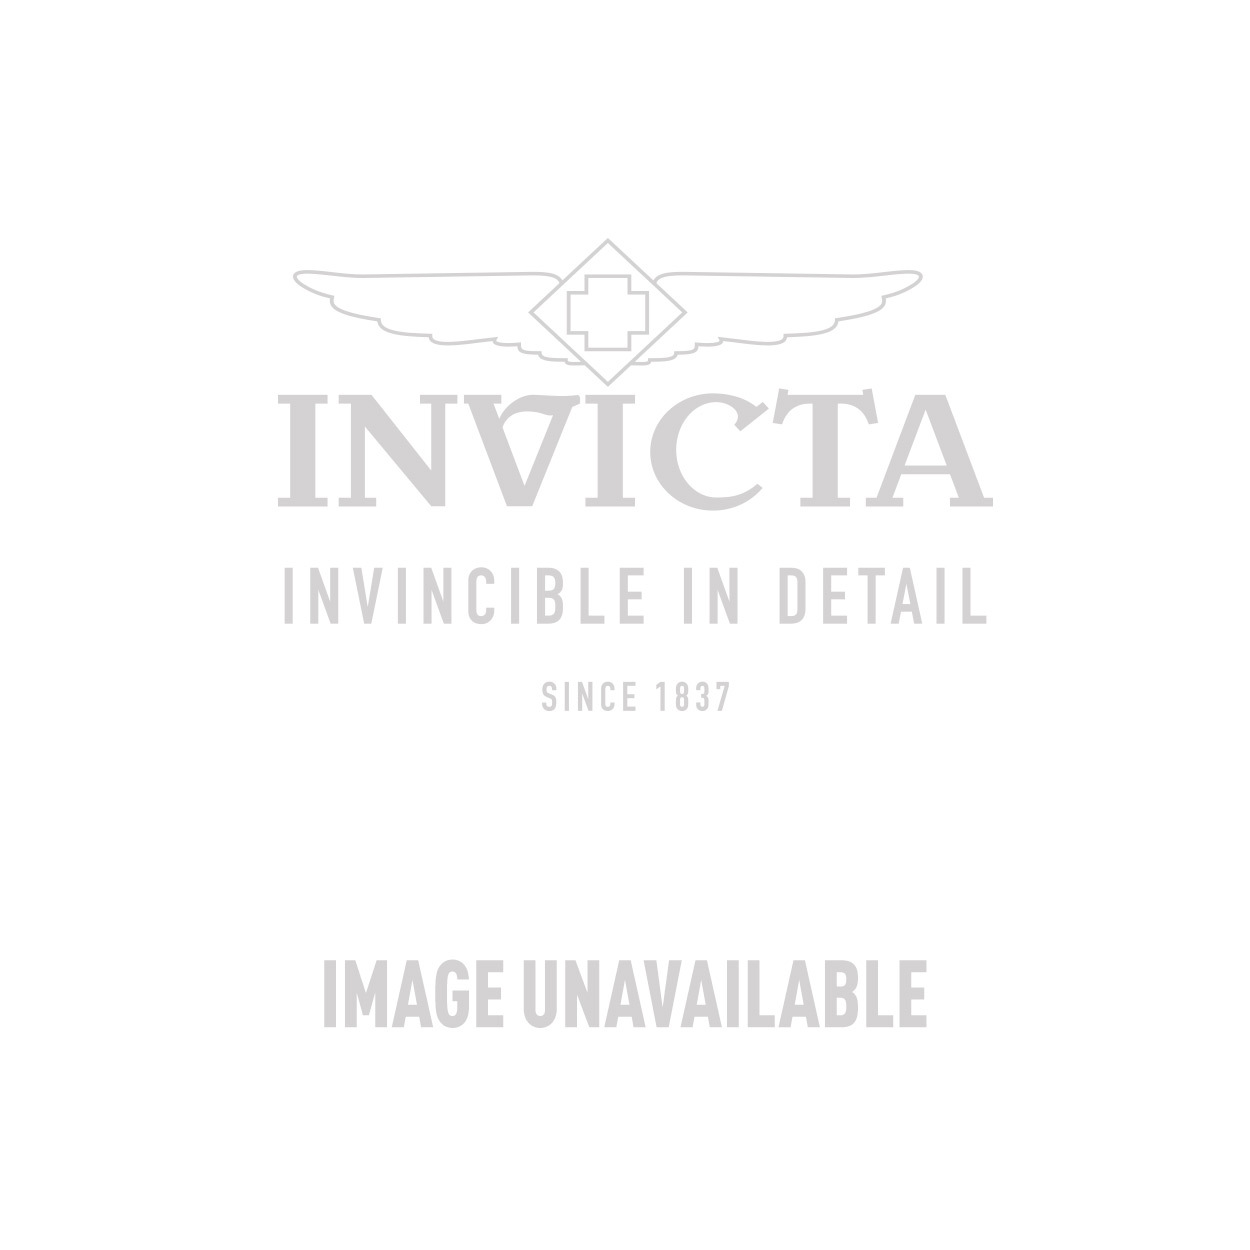 Invicta Sea Spider Swiss Movement Quartz Watch - Rose Gold case with Rose Gold, Black tone Stainless Steel, Polyurethane band - Model 10297